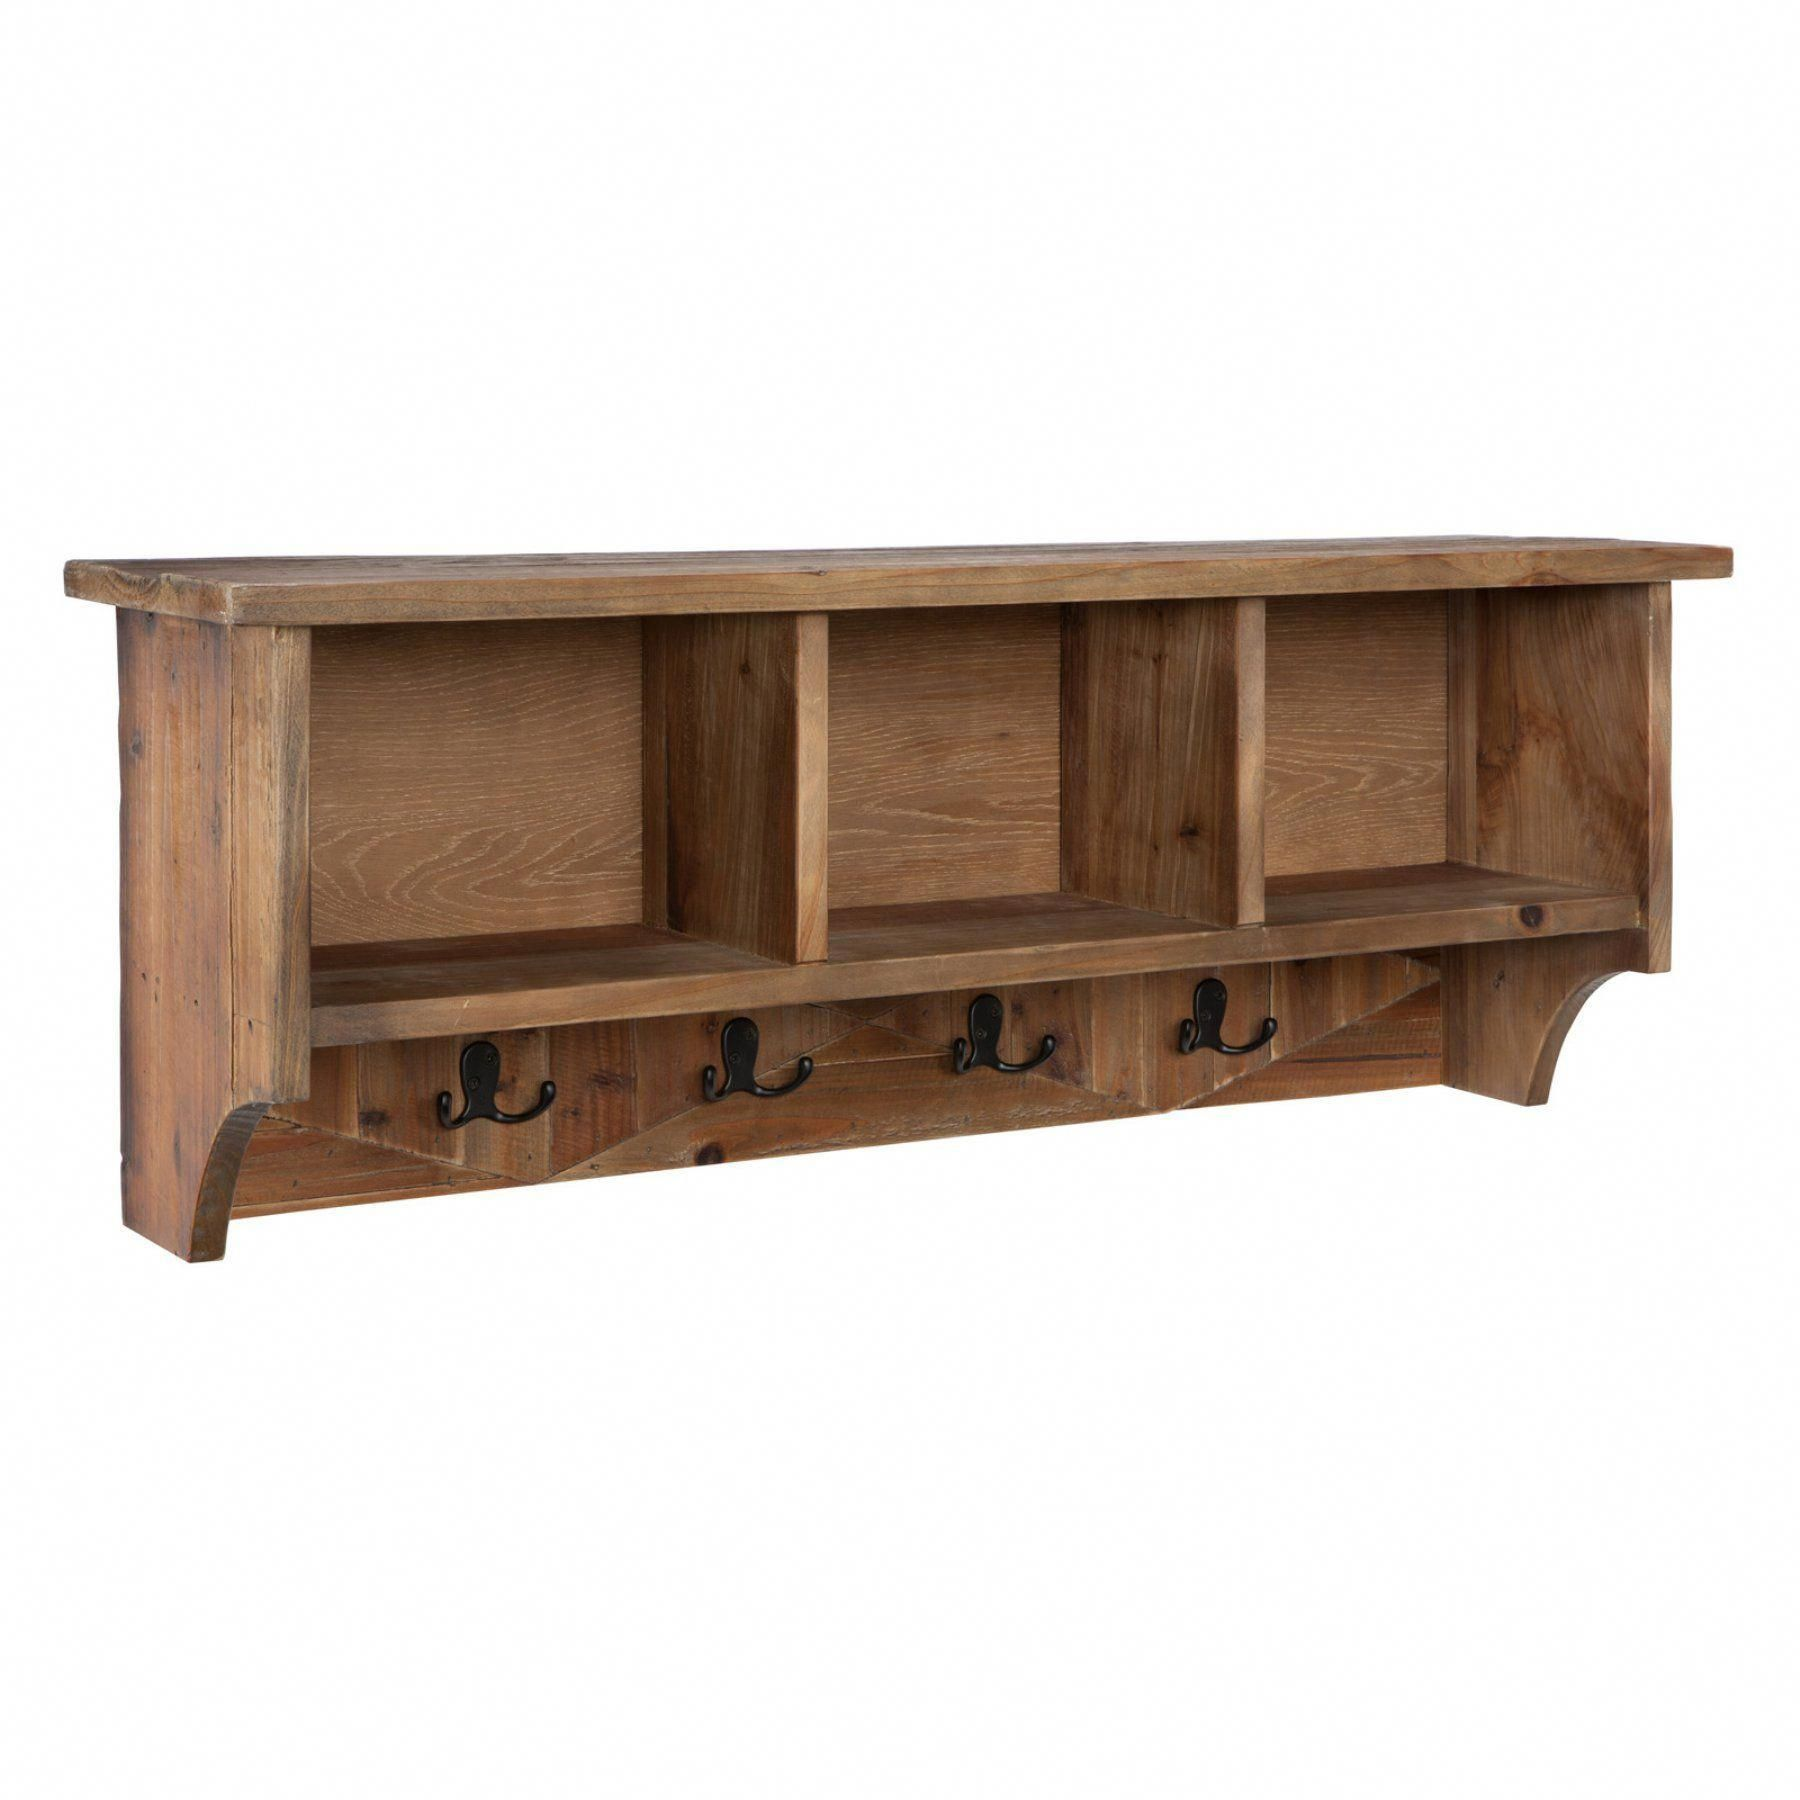 Alaterre Furniture Revive Rustic Natural Wall Mounted Coat